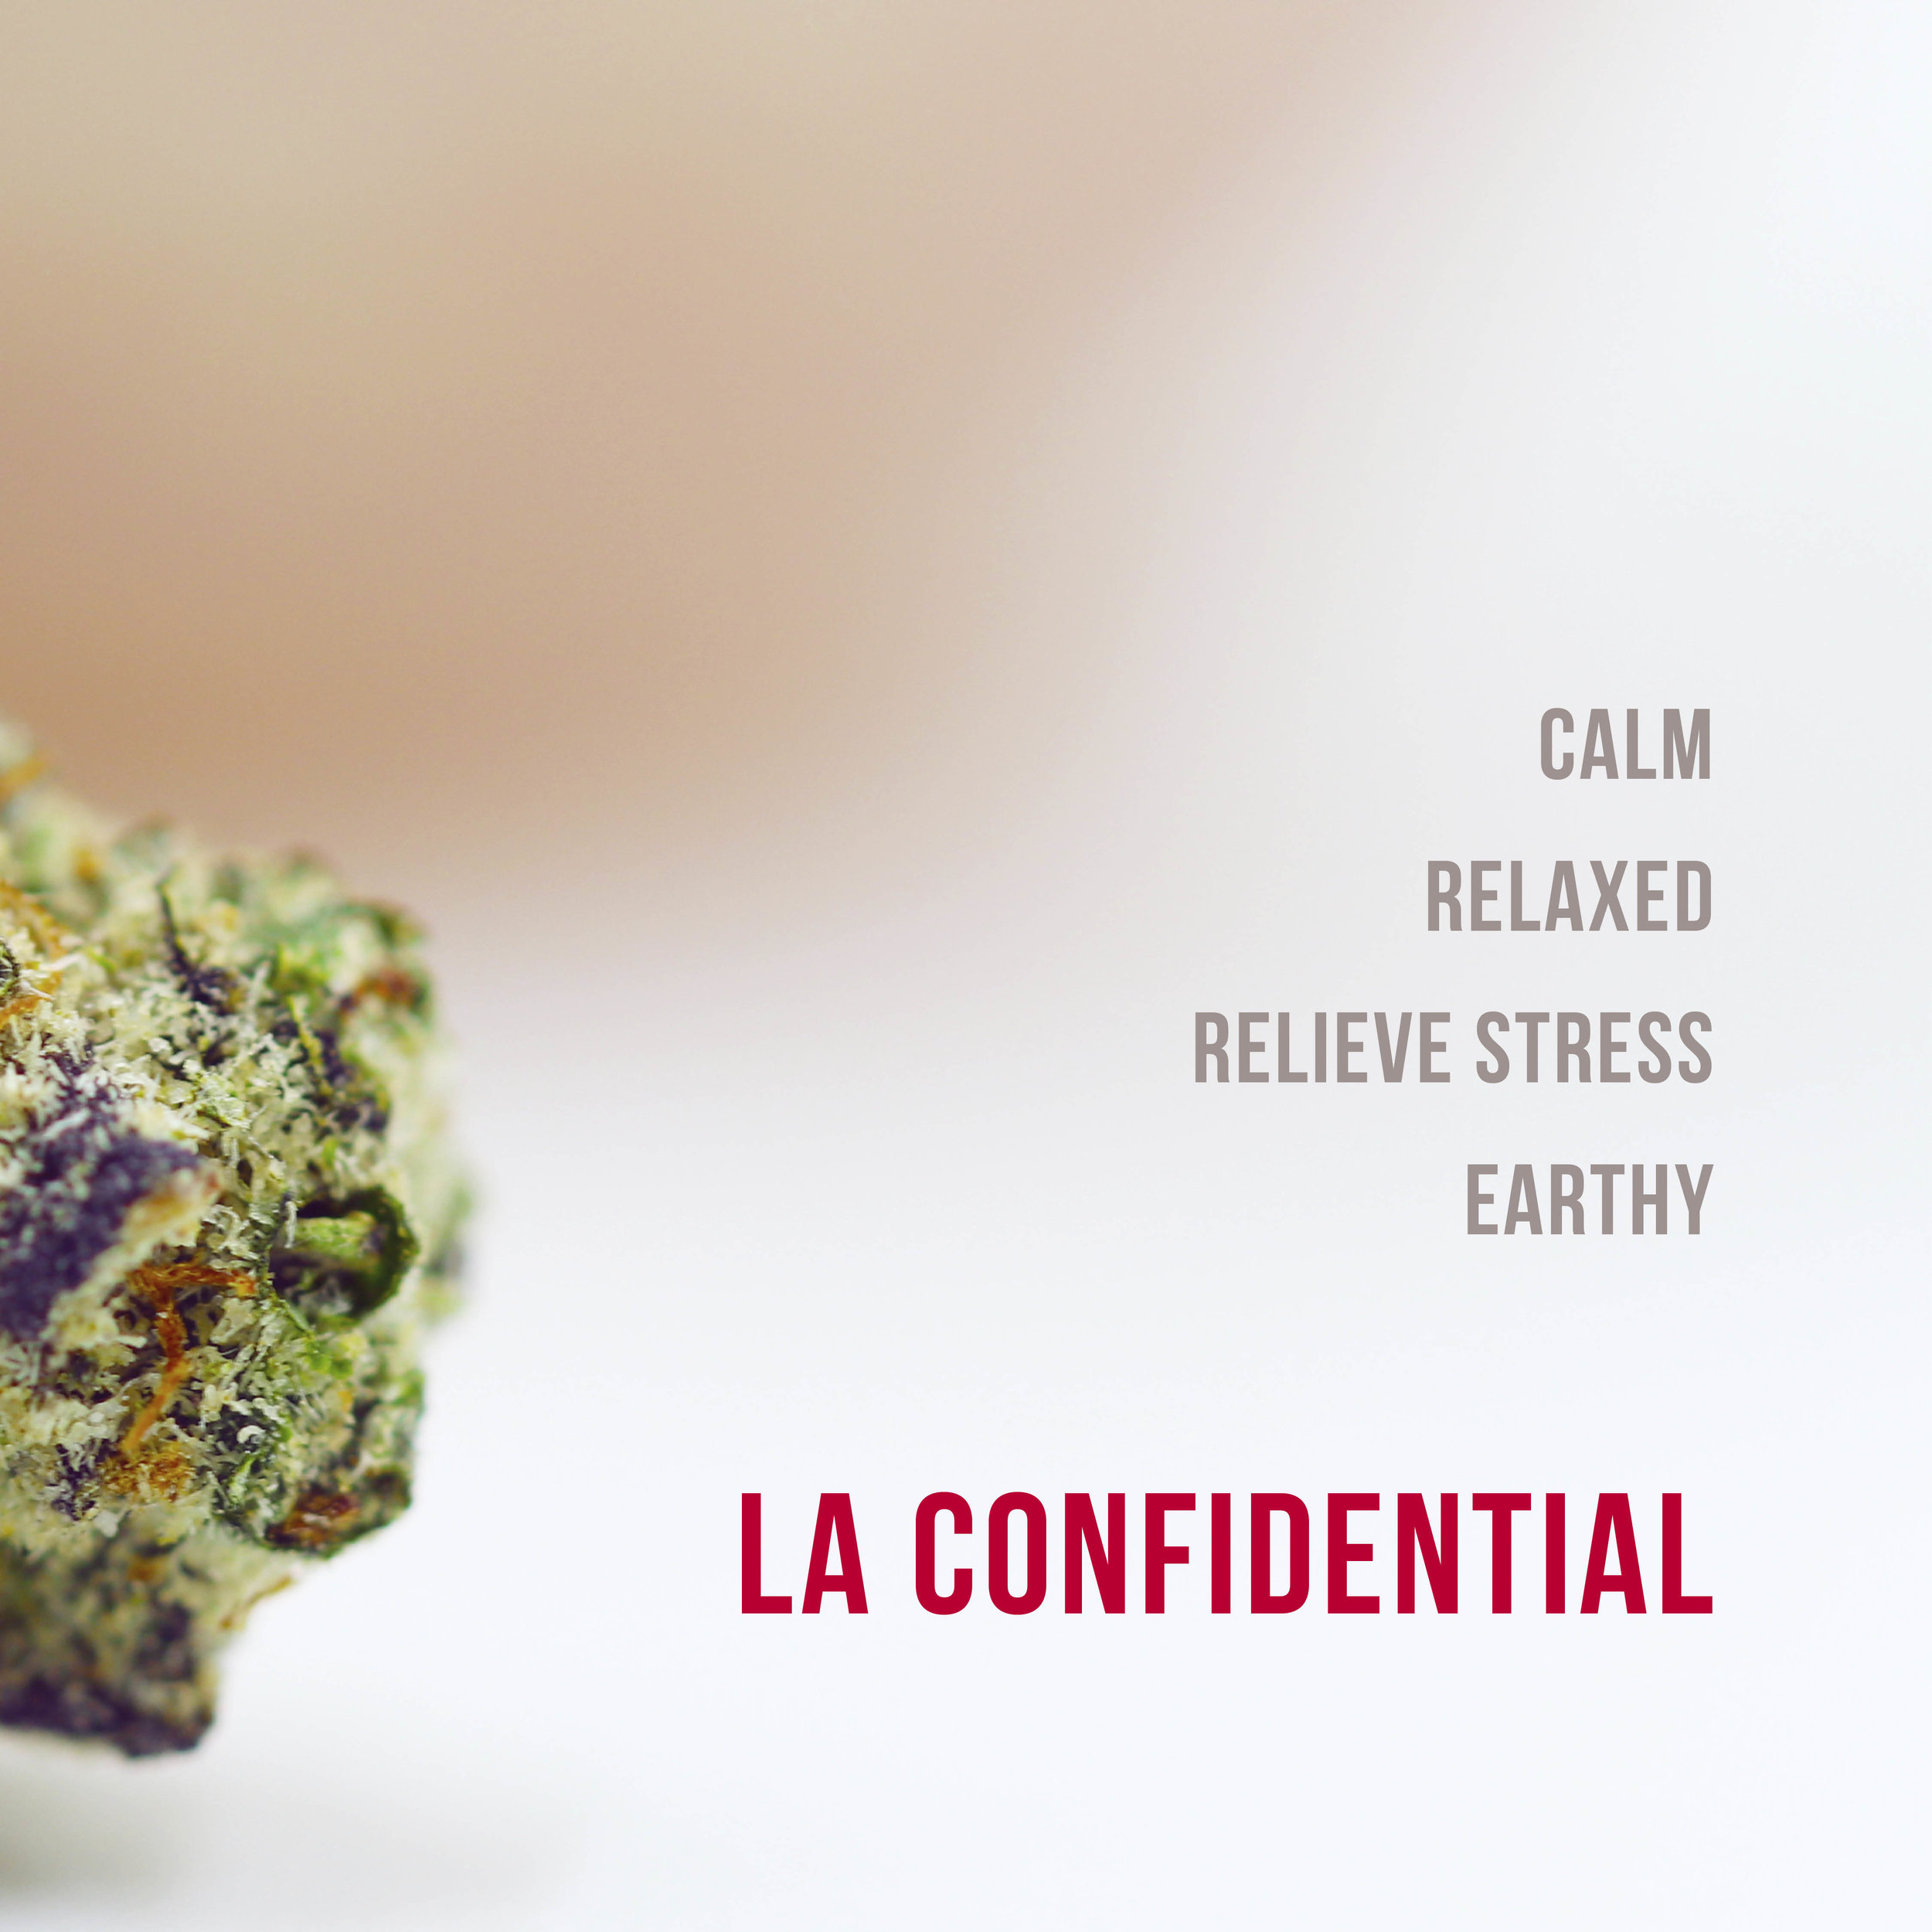 La confidential new.jpg